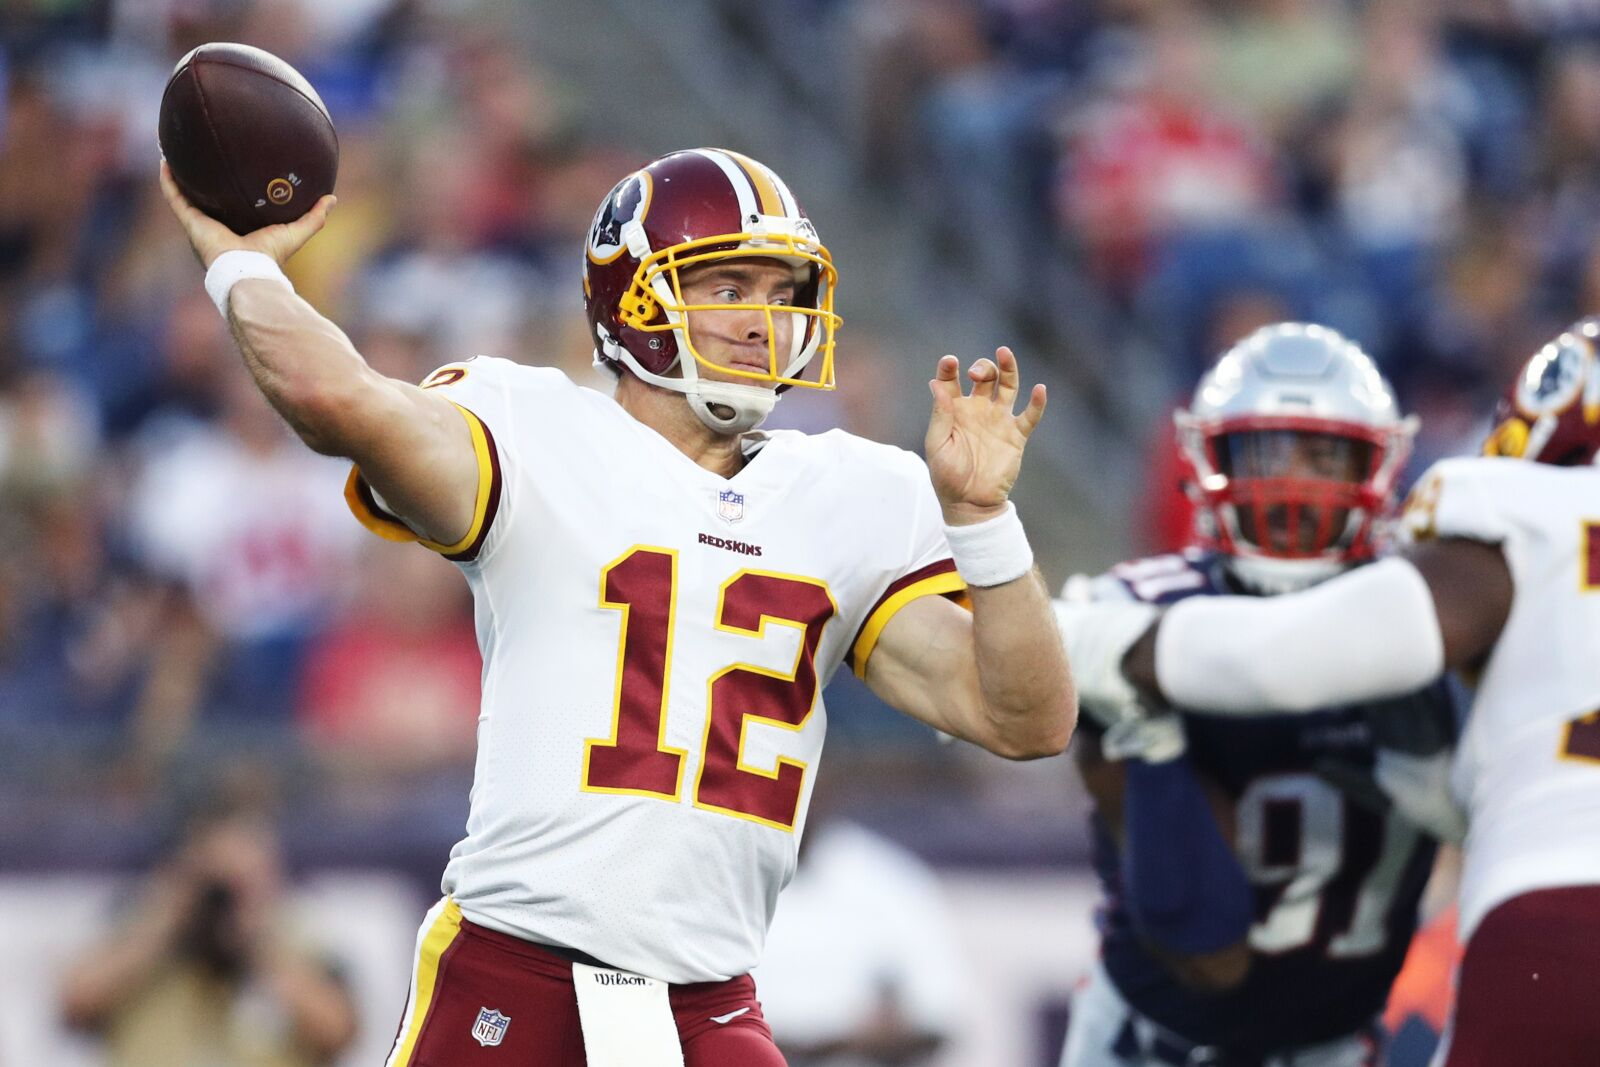 Redskins could look to trade veteran QB to Colts in wake of Andrew Luck's retirement